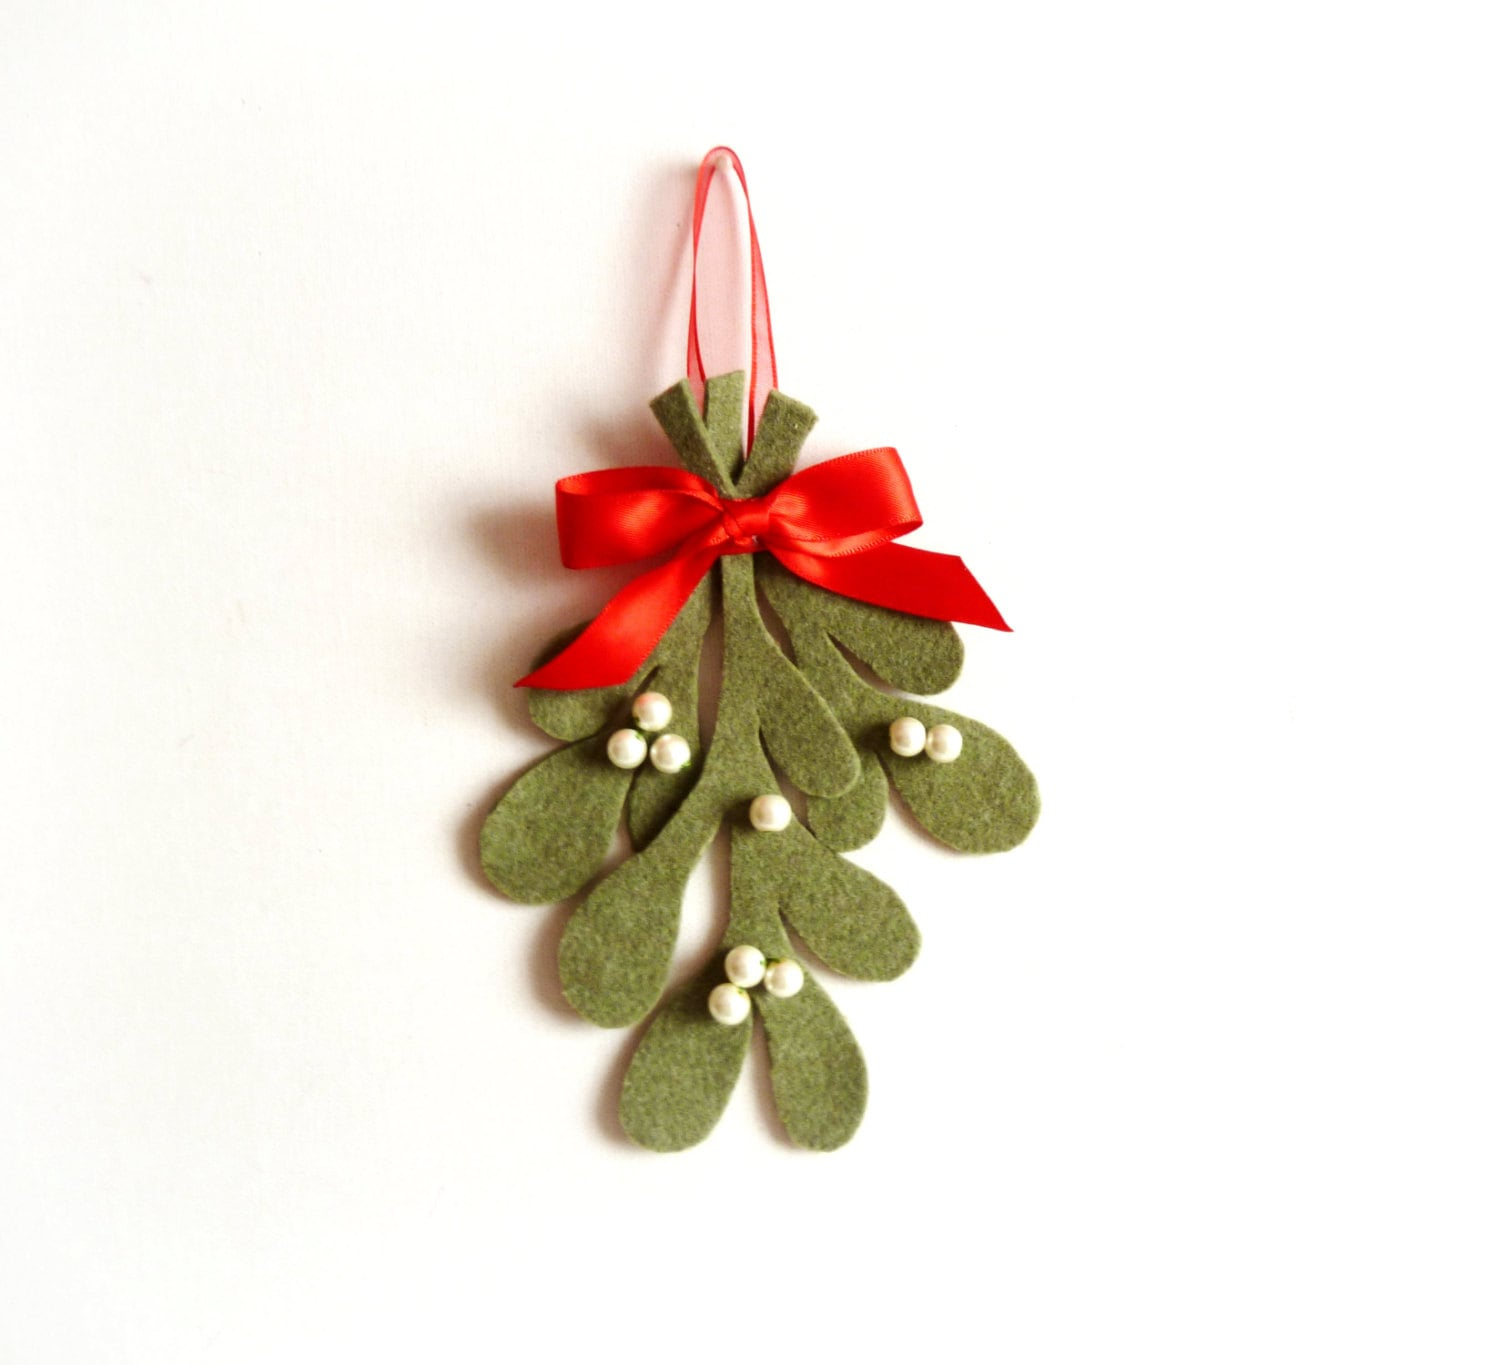 Christmas Mistletoe,Mistletoe Traditional  Decoration,Christmas Ornament,Christmas Home Decor,Holiday Decor,Green Red White,Felt Christmas - LorenzaPari